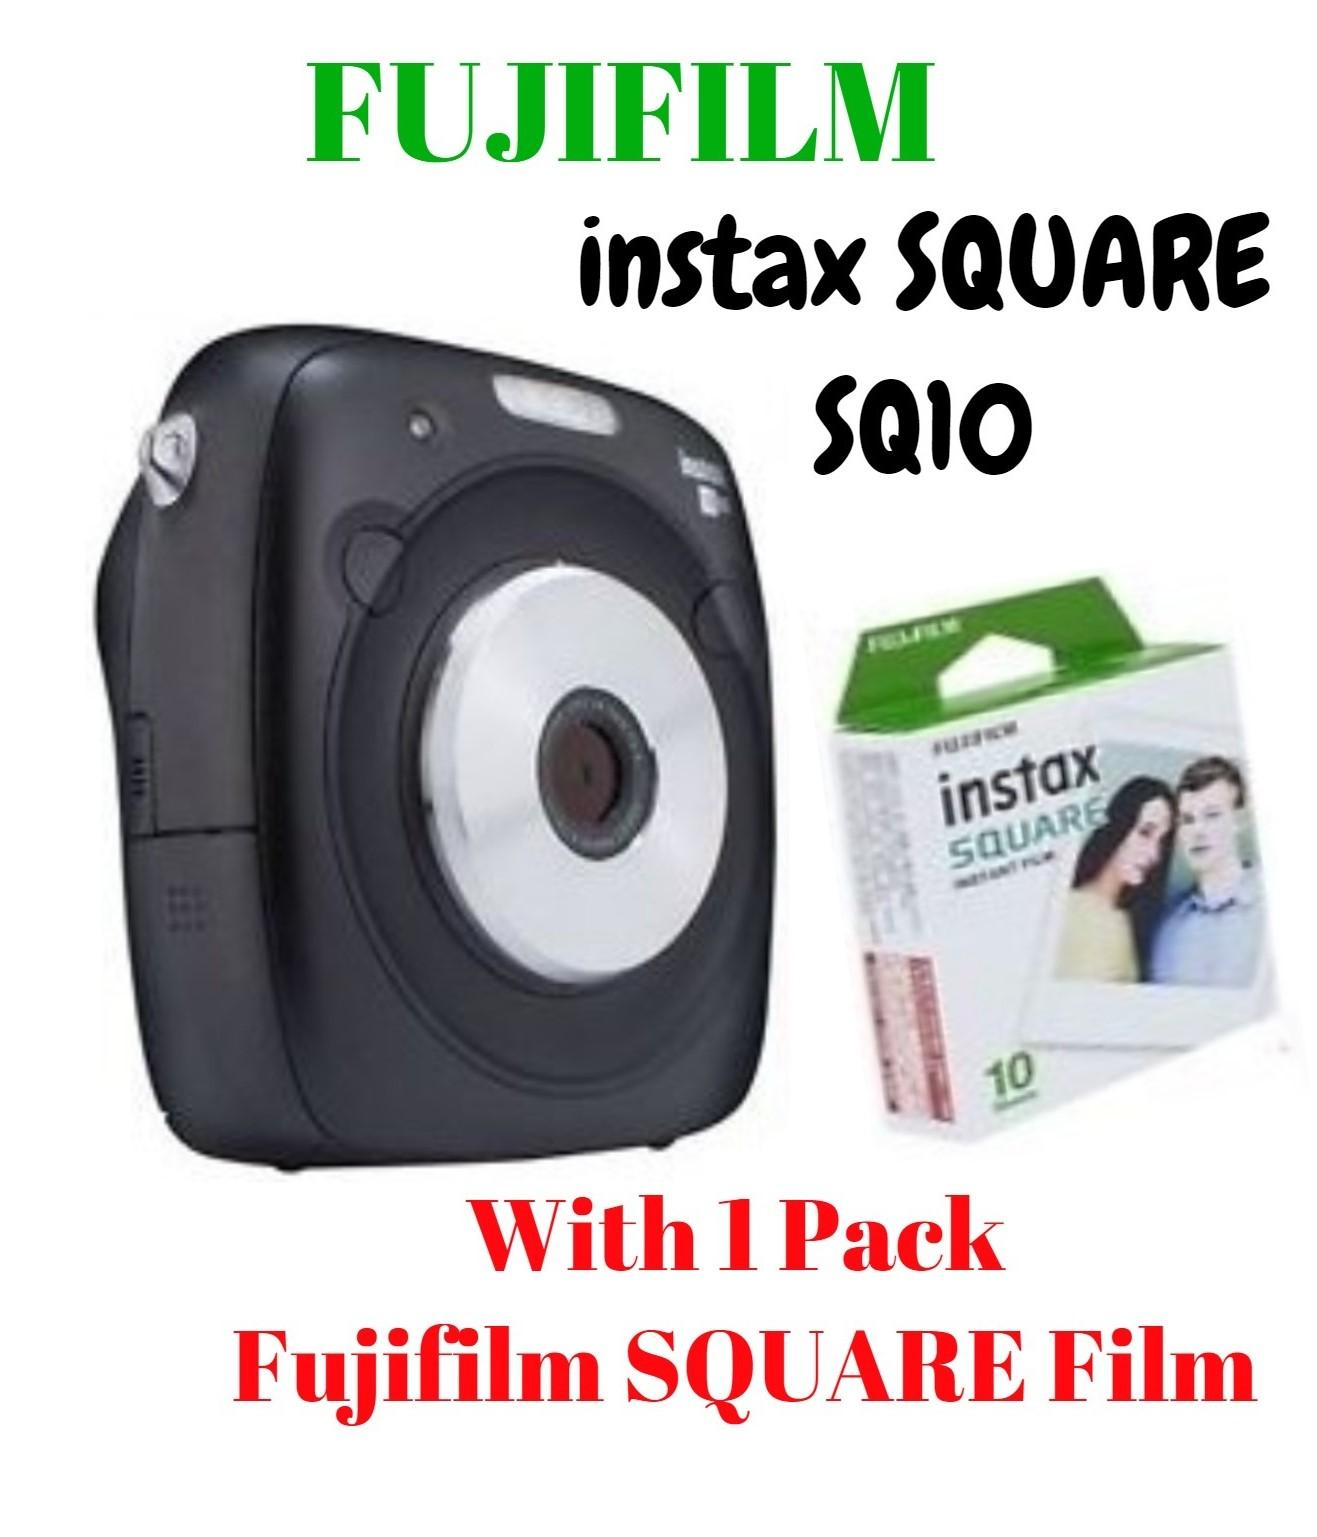 How Do I Get Free Instax Square Film 1 Pack With Fujifilm Instax Square Sq10